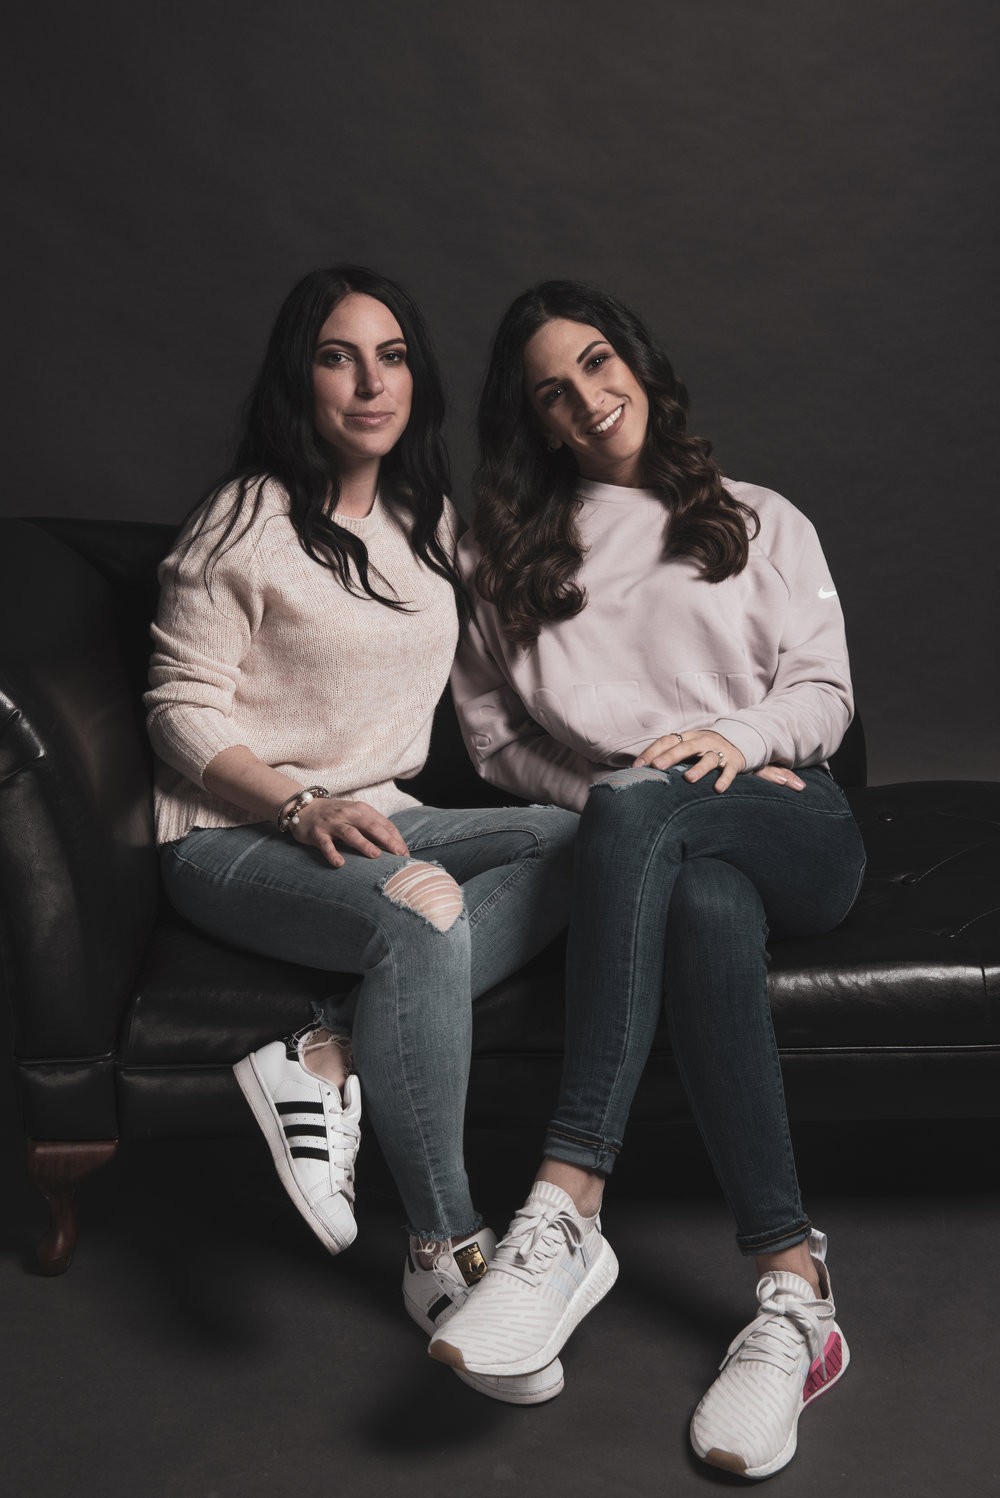 Our Story - We are Oriana and Sabrina, the founders of Atelier Bloom Montreal. Welcome to our workshop and creative space.After joining forces in November of 2017, we knew we had to make our mark on the contemporary art world.By combining our talents and focusing all our energy in our work, we hope to catch your eye and stand out amongst the crowd.